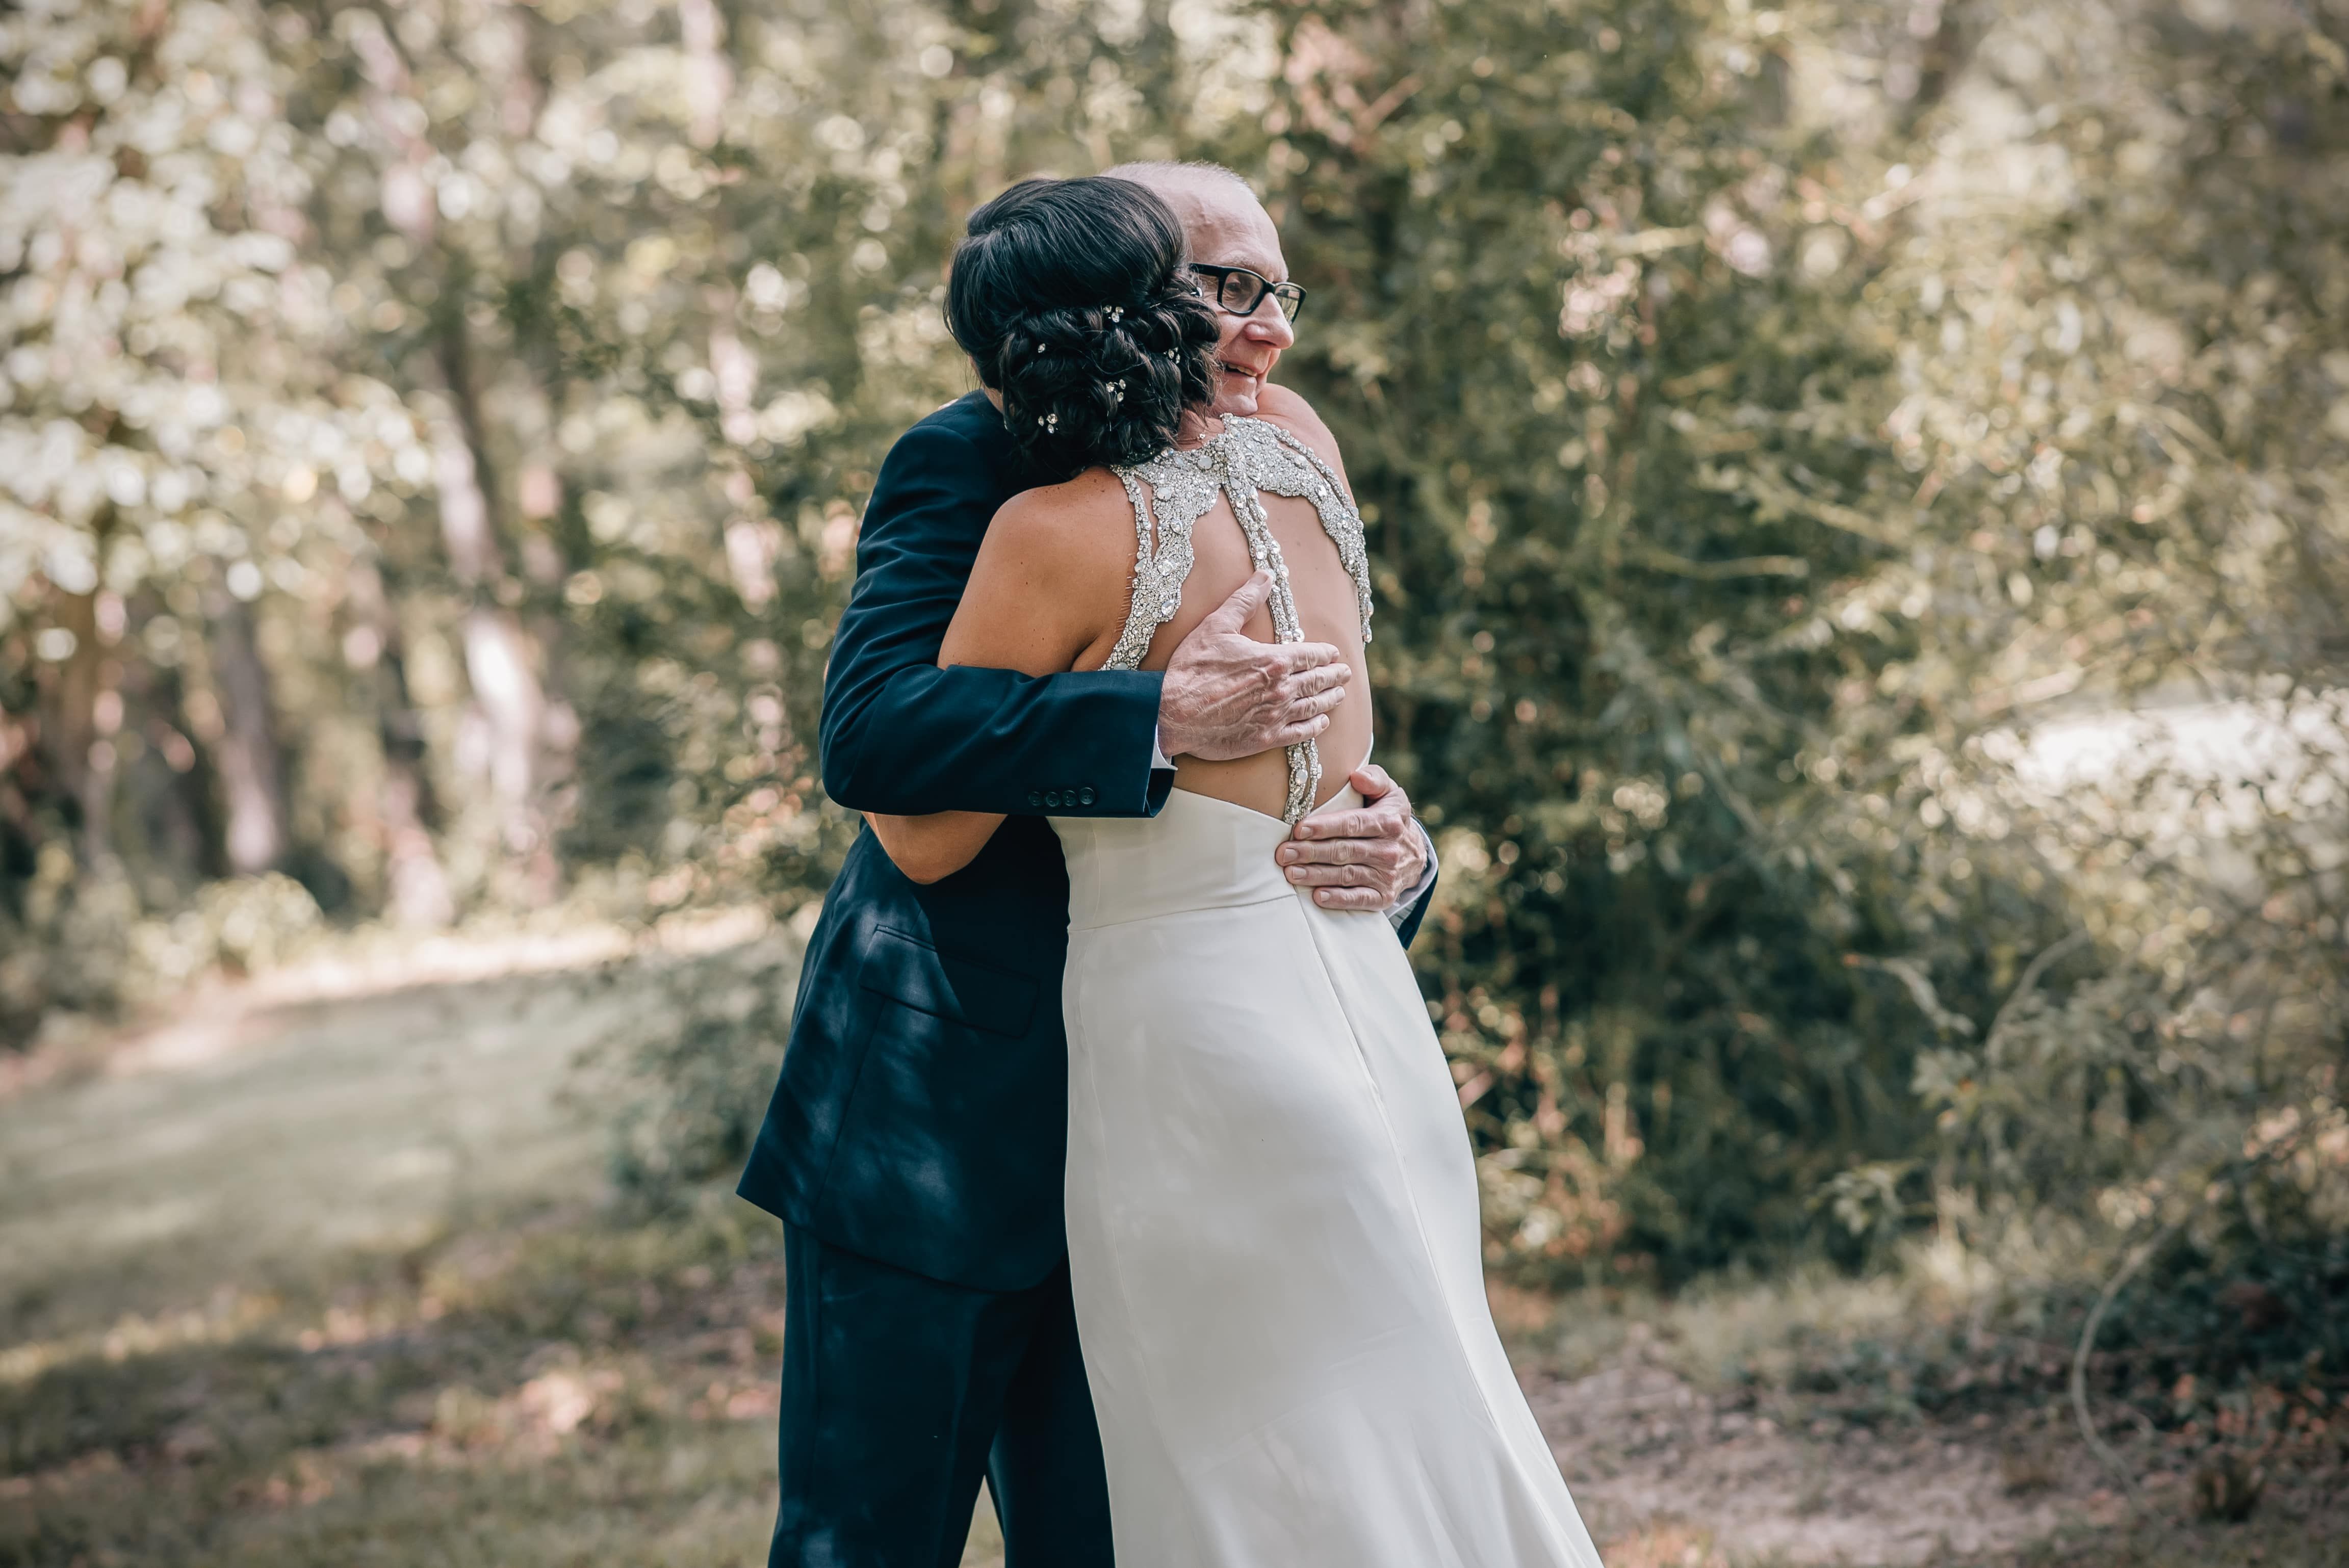 Bride and her father embrace after a sweet first look between them captured by Shutter Owl Photography at The Ivy Place